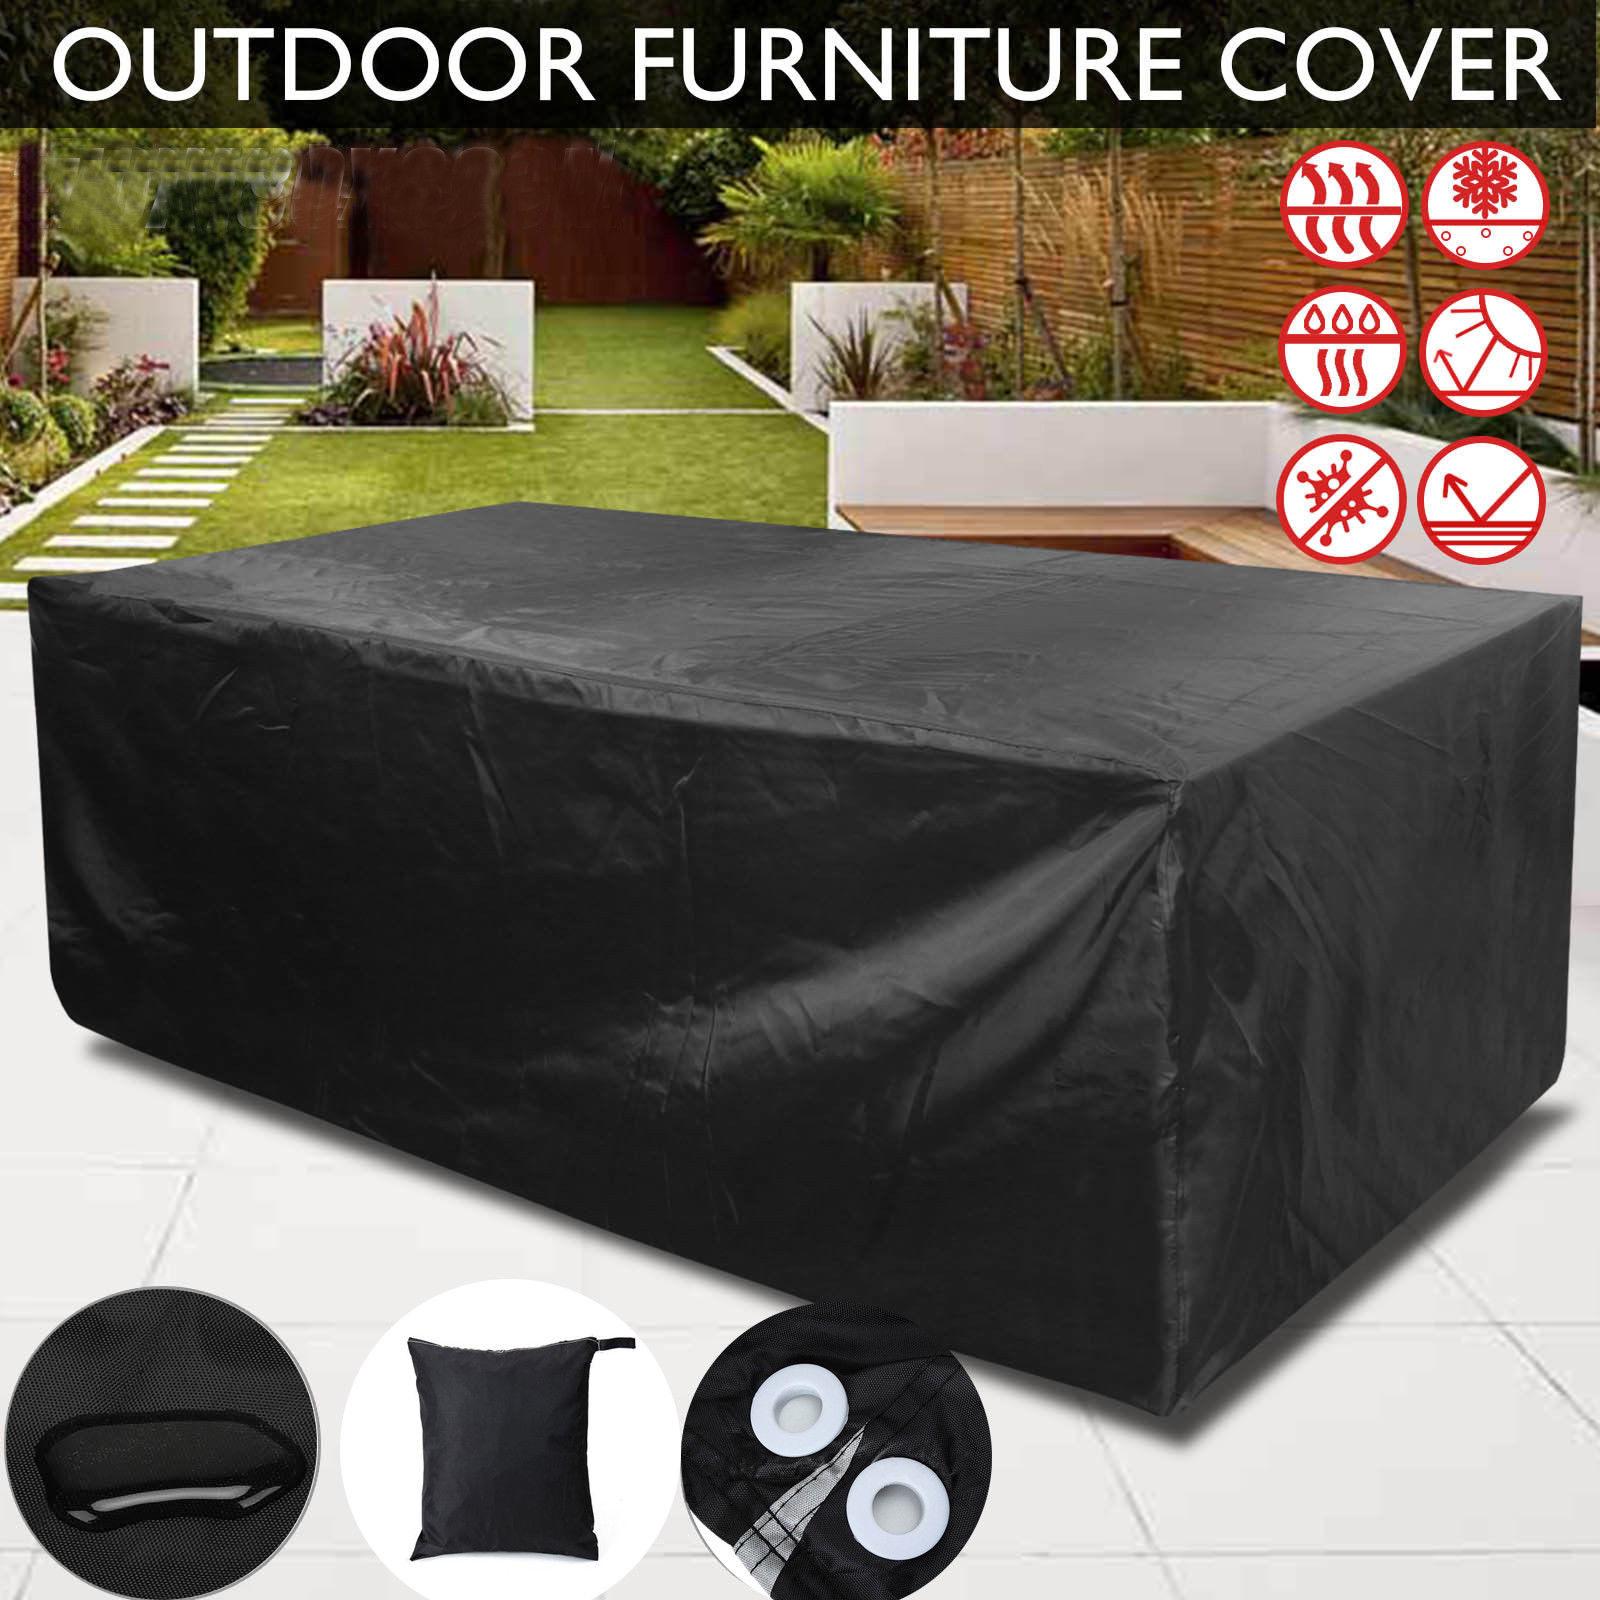 Black Outdoor Chair Covers Good Computer Aliexpress Buy 4 Size Waterproof Patio